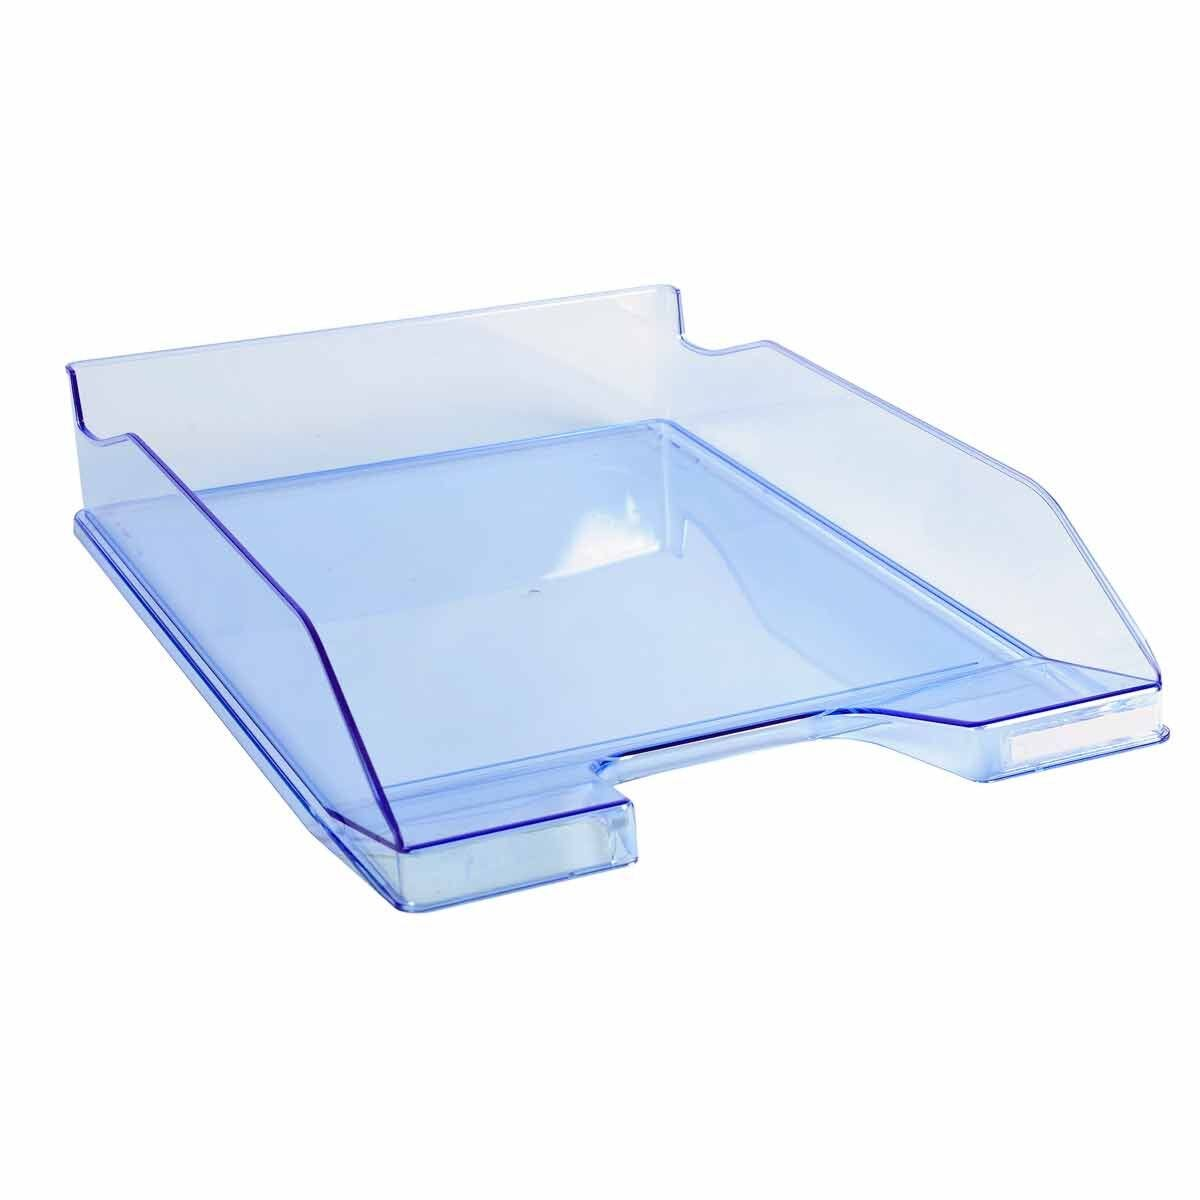 Exacompta Office Letter Tray Midi Combo Pack of 6 Translucent Gloss Ice Blue